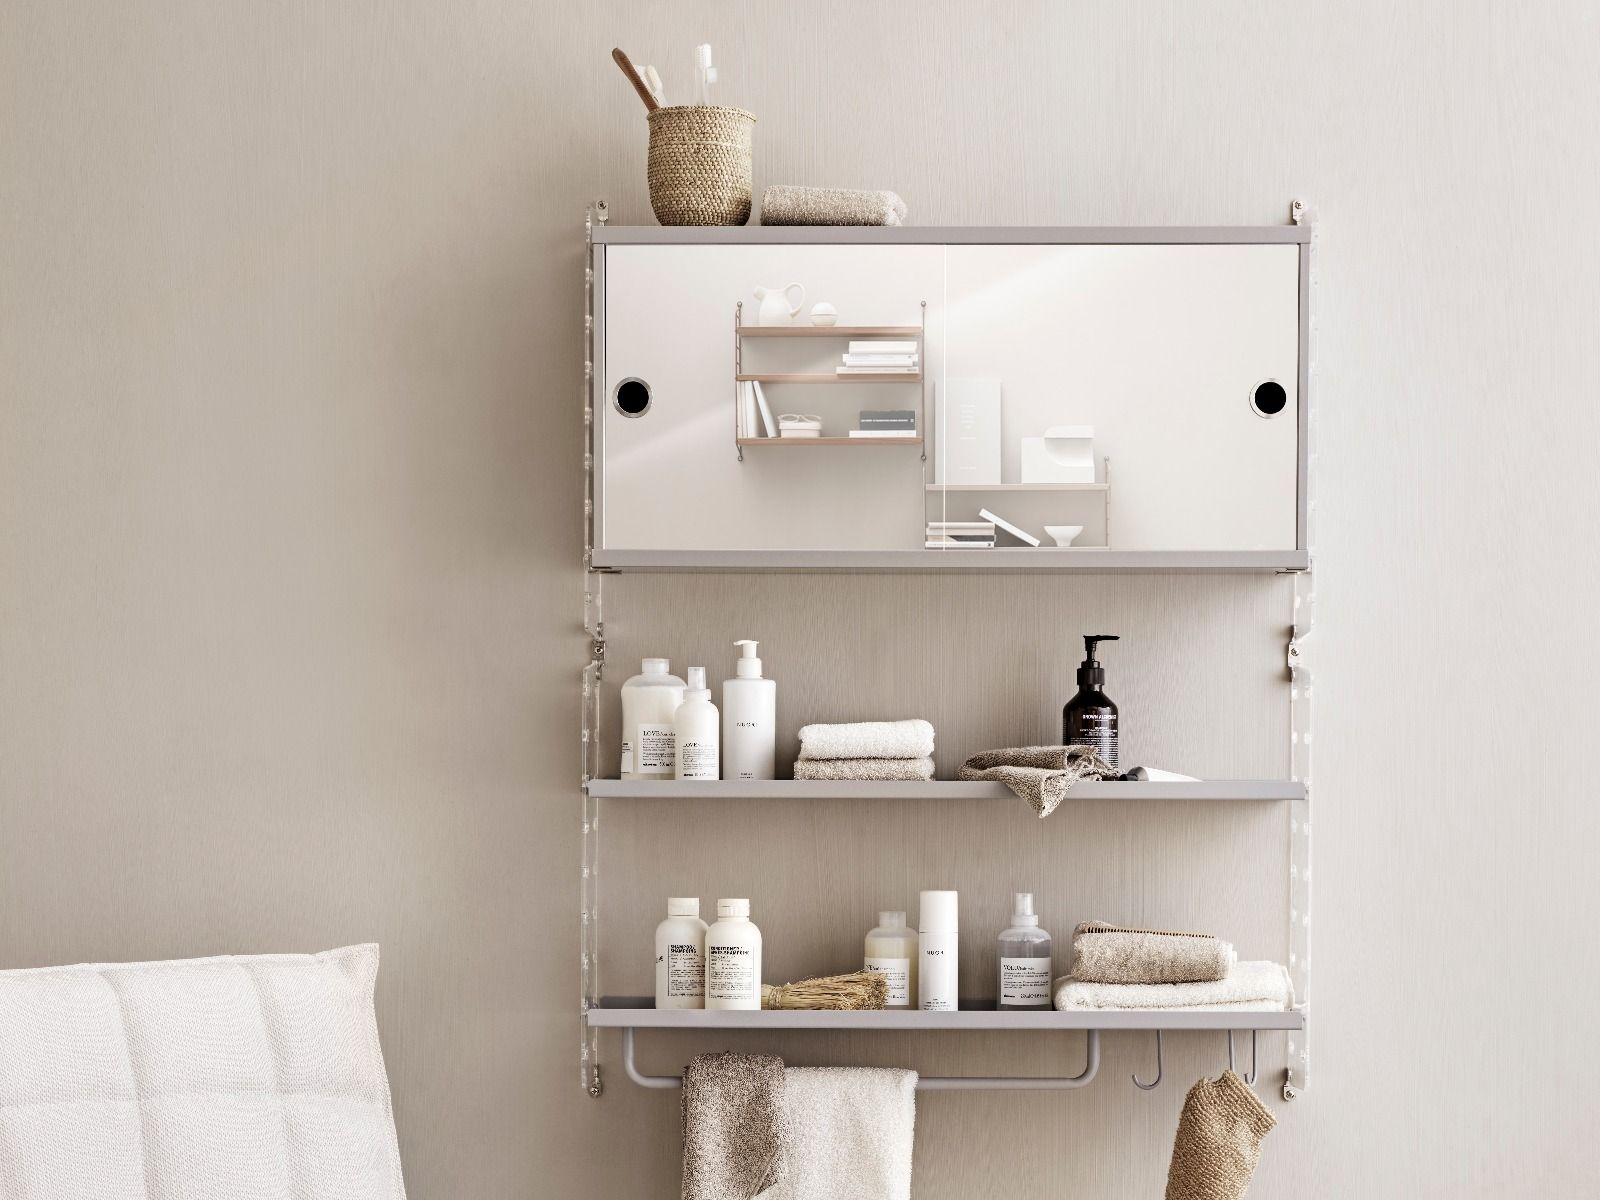 String shelving plexi end panel  used with bathroom cabinet